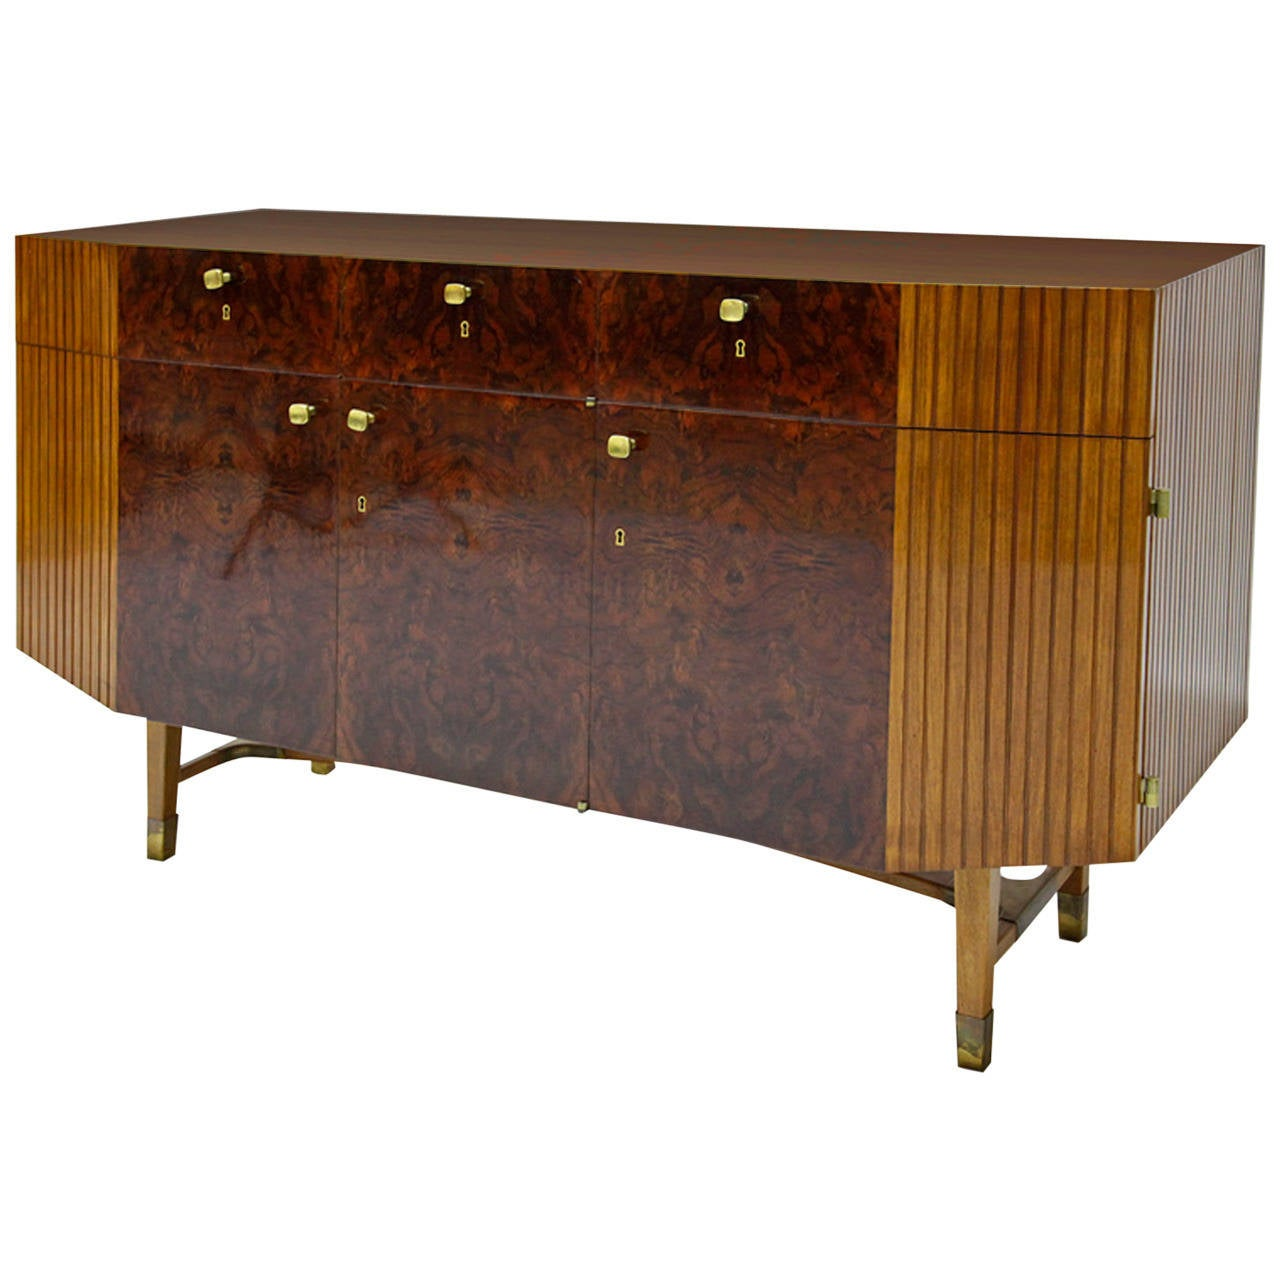 Wonderful sideboard circa 1940s 1950s for sale at 1stdibs for Sideboard 2 50 m